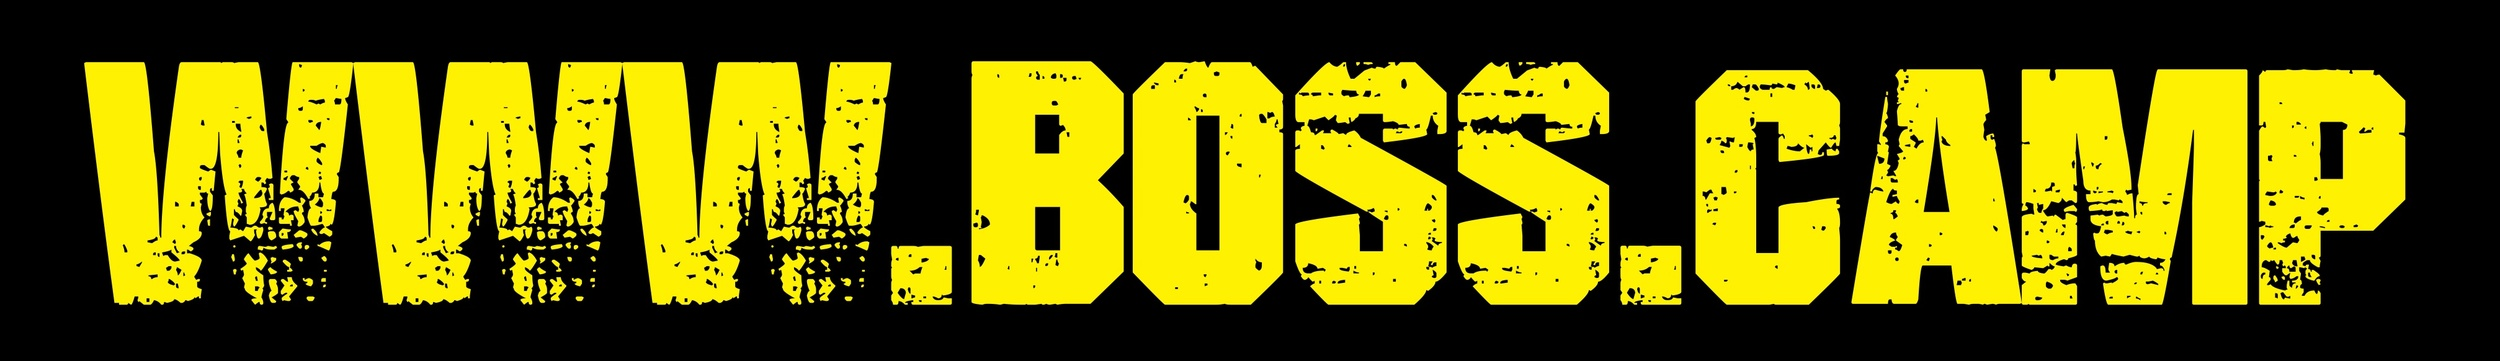 Get better employee performance and make managing easy with www.boss.camp jpeg